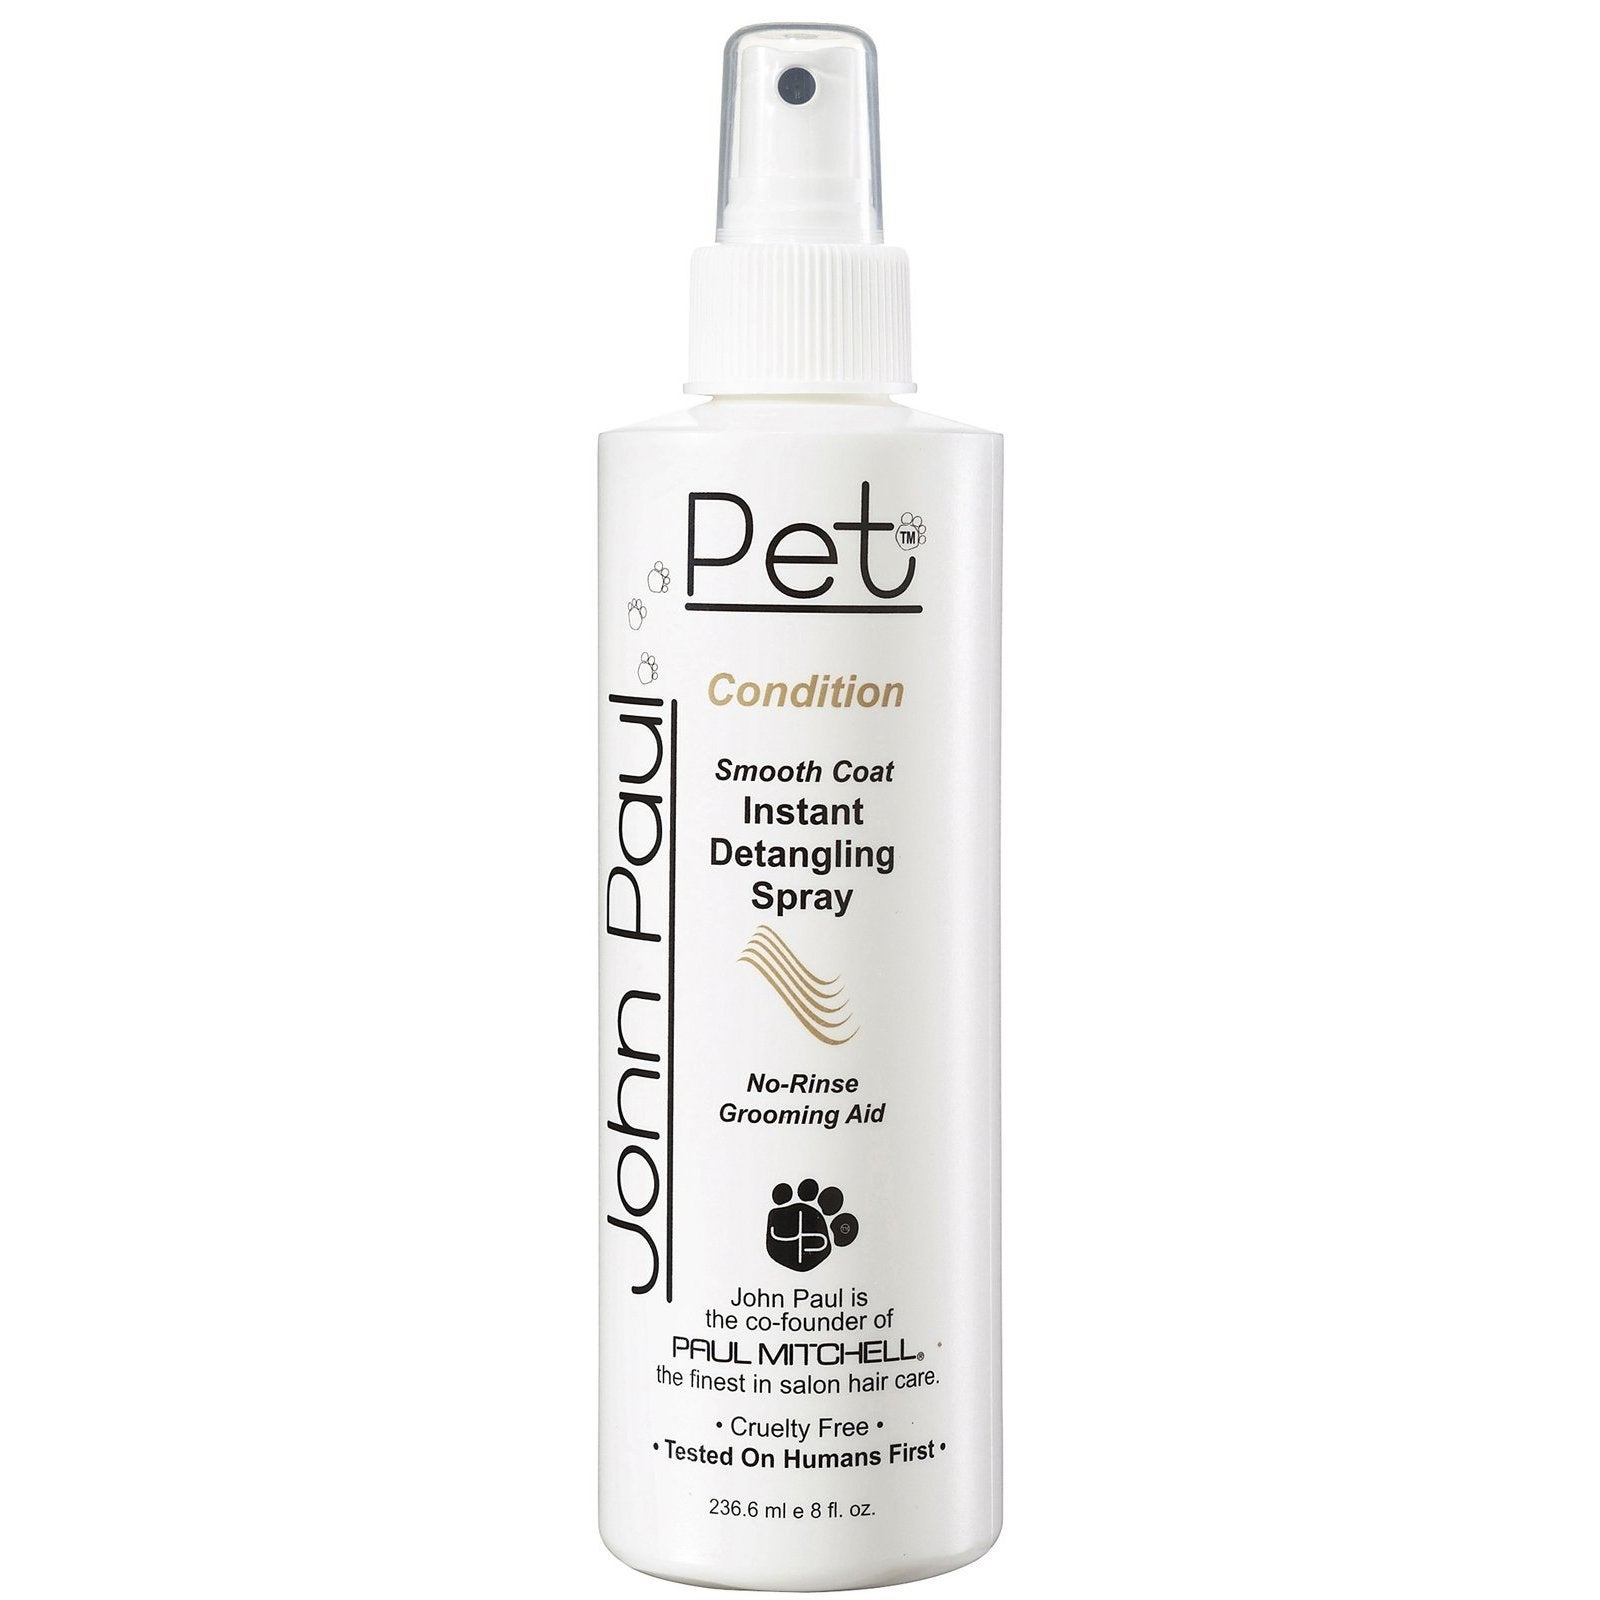 Paul Mitchell John Paul Pet Smooth Coat Instant Detanglin...